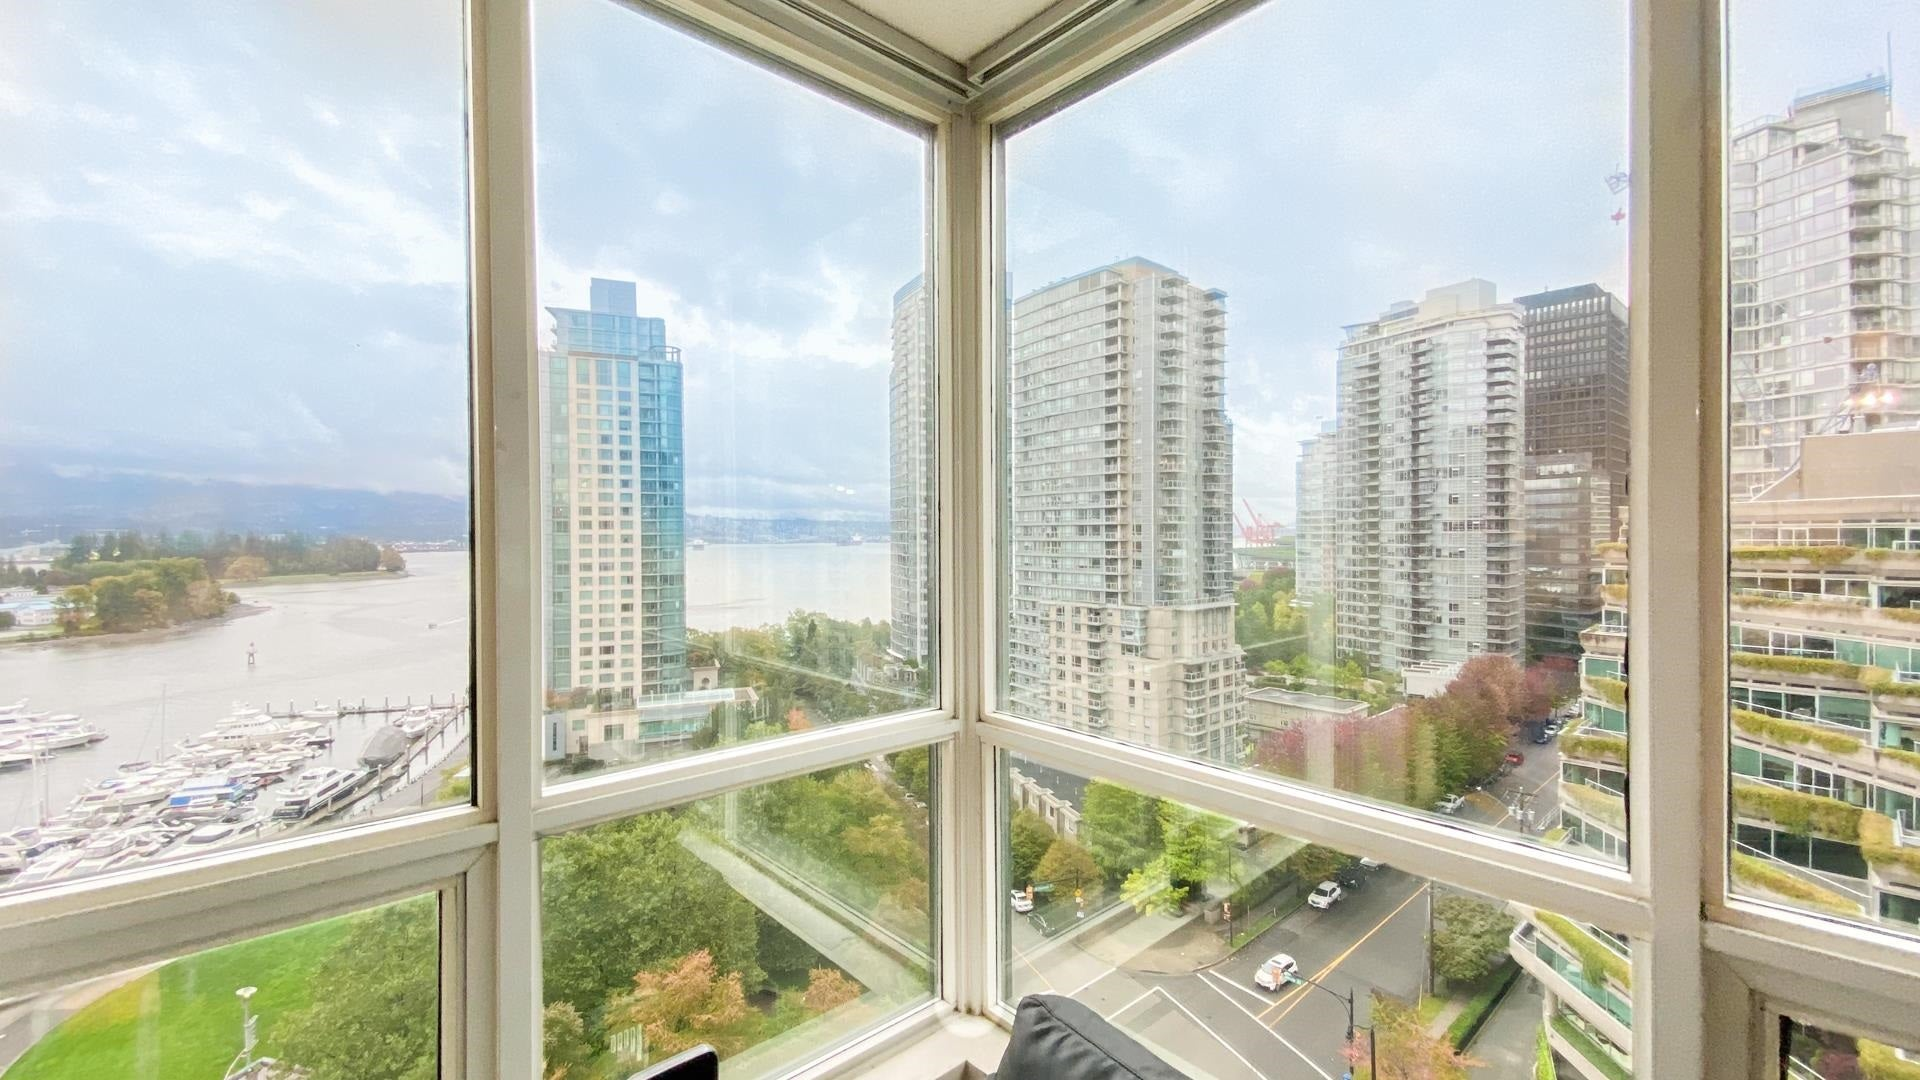 1404 555 JERVIS STREET - Coal Harbour Apartment/Condo for sale, 1 Bedroom (R2623157)